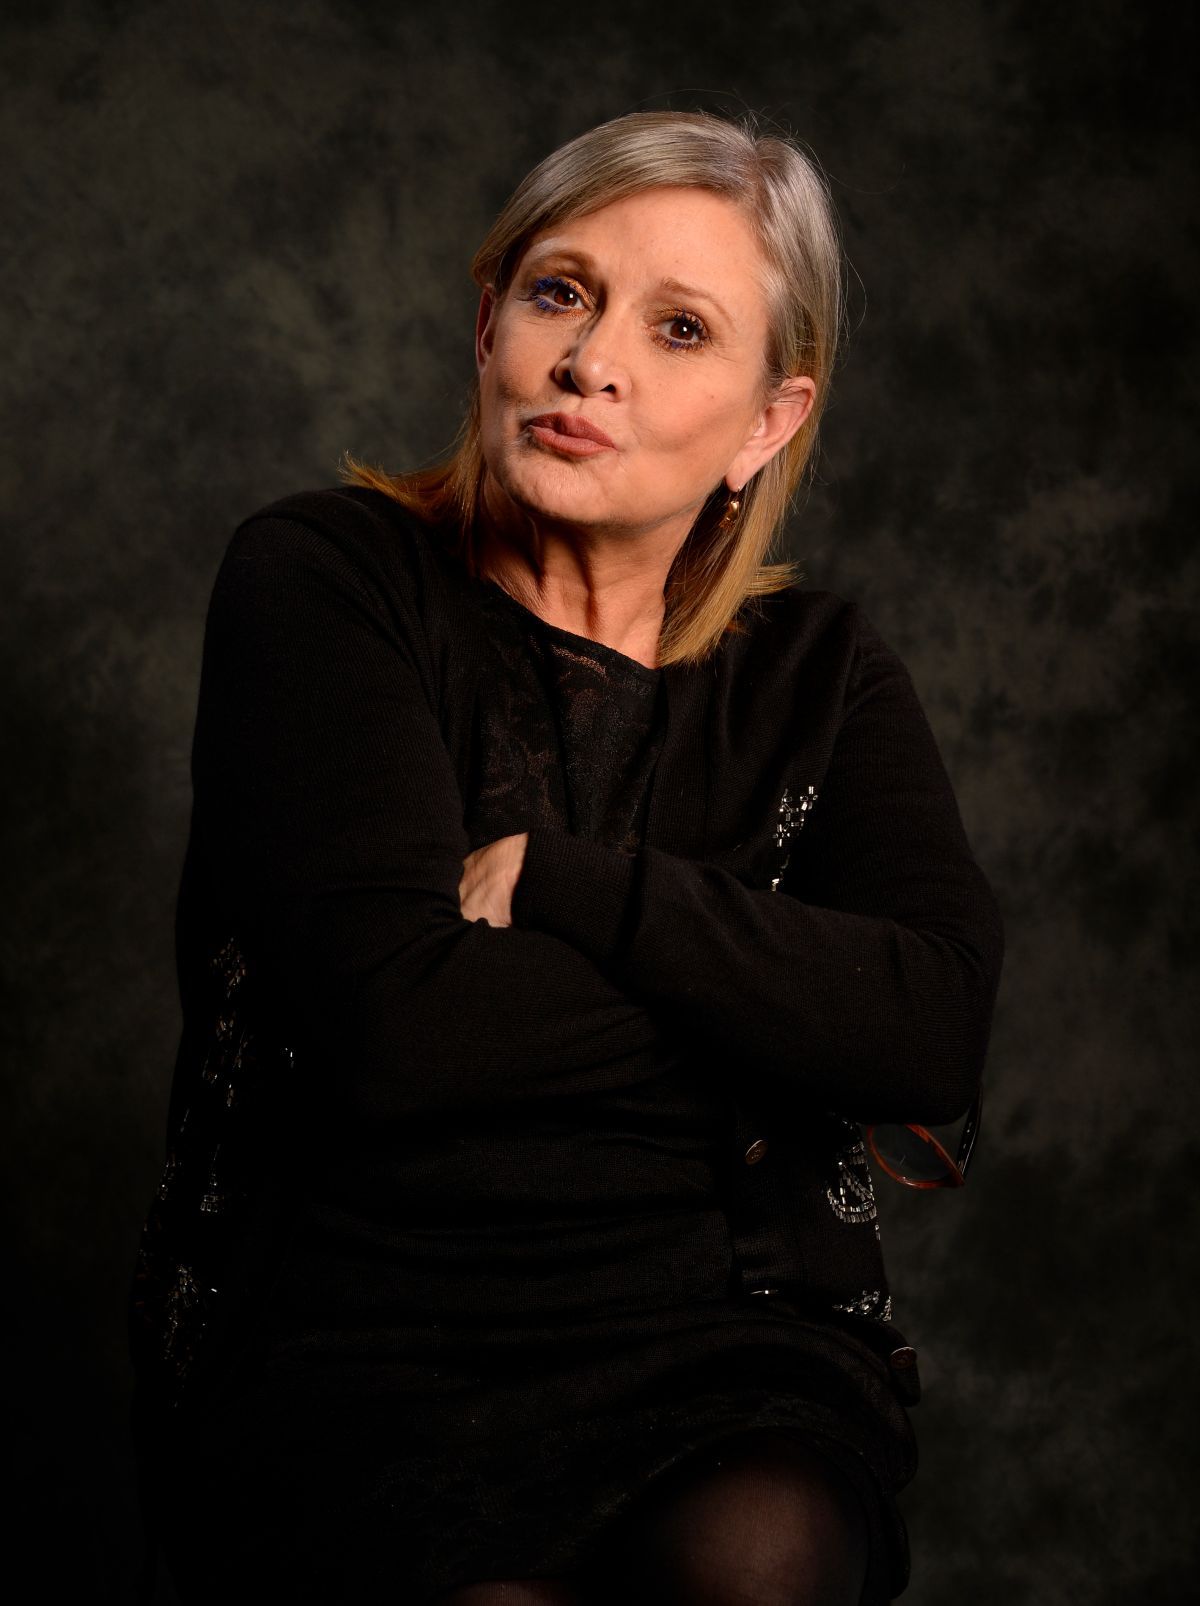 CARRIE FISHER - USA Today 2015 Portrait